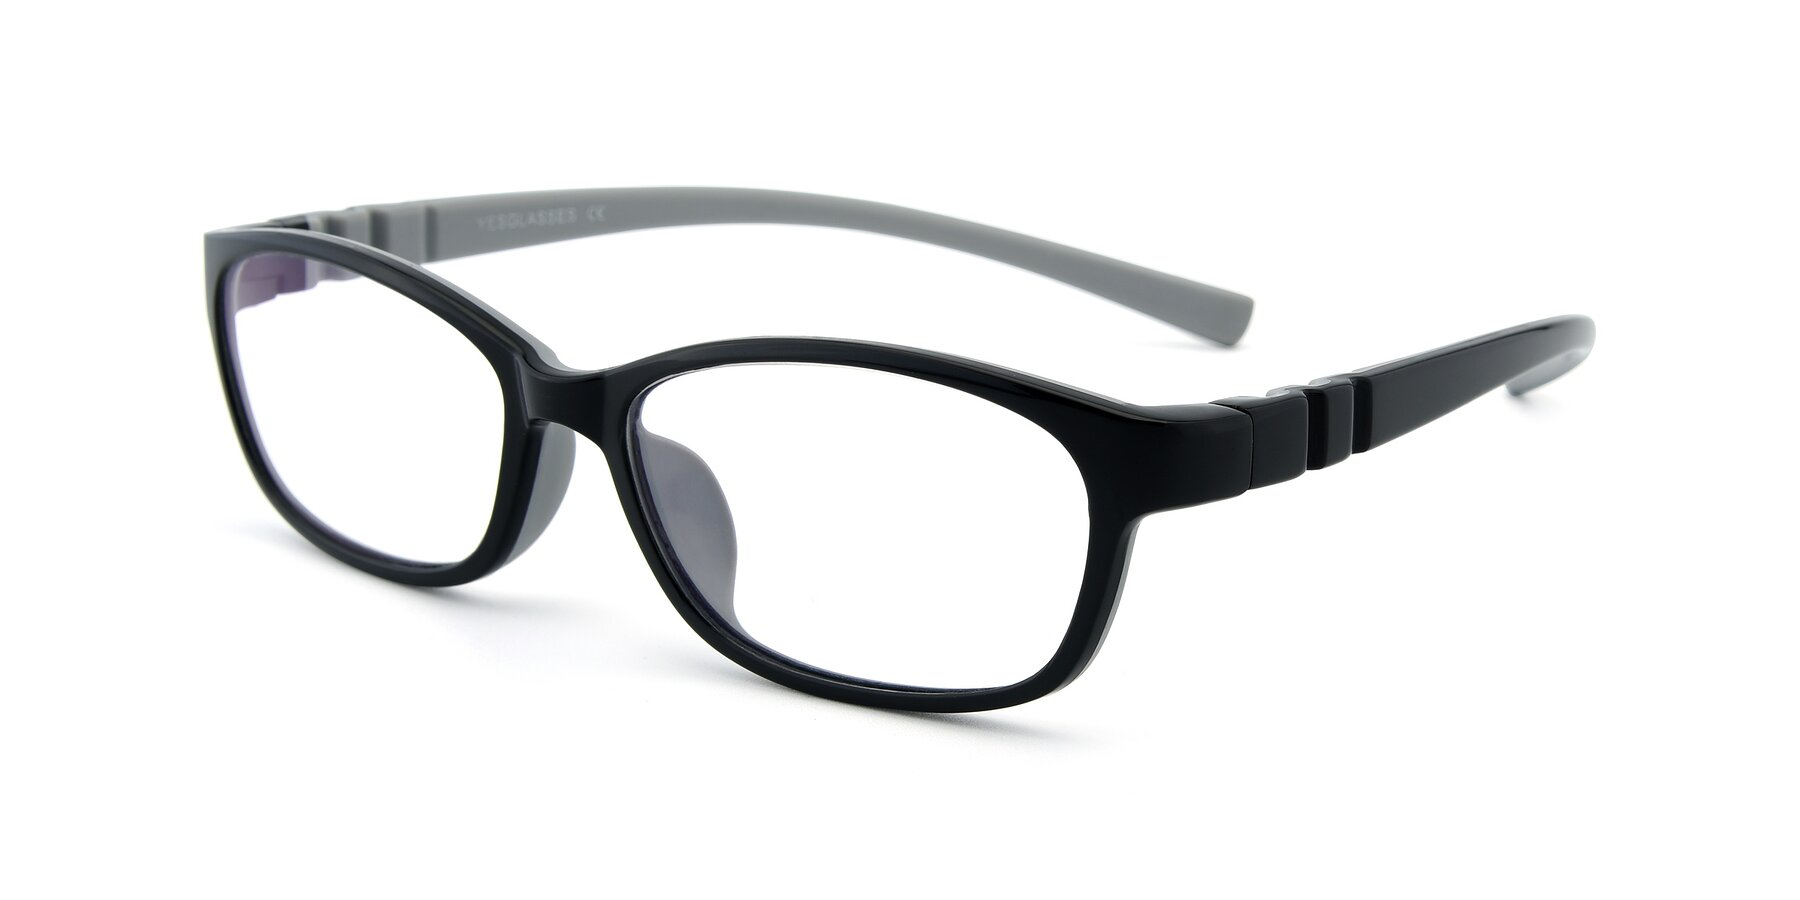 Angle of 556 in Black-Gray with Clear Eyeglass Lenses